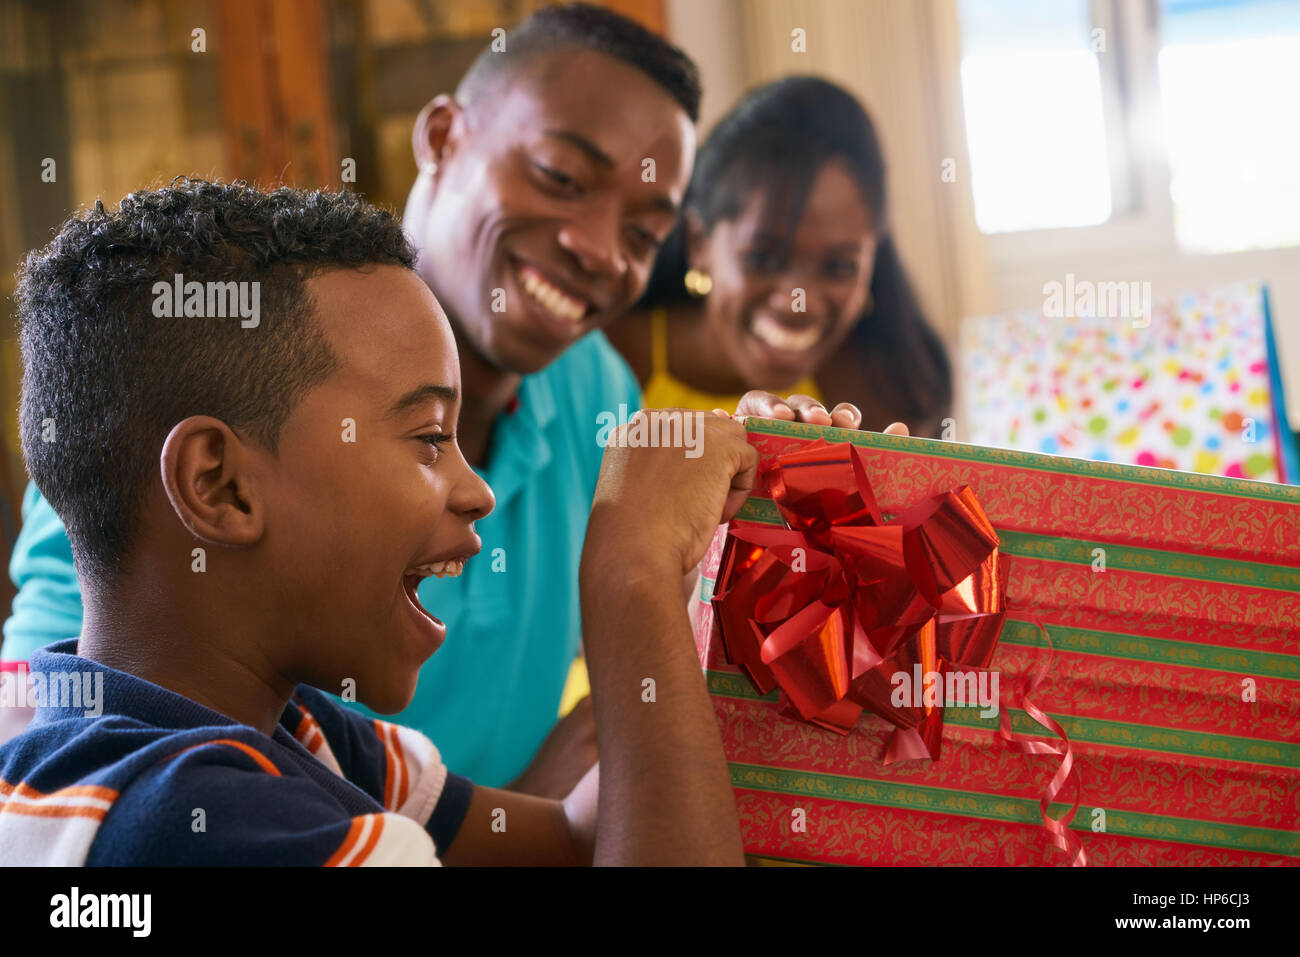 Happy black famille à la maison. African American father, mother and child celebrating birthday, s'amusant Photo Stock